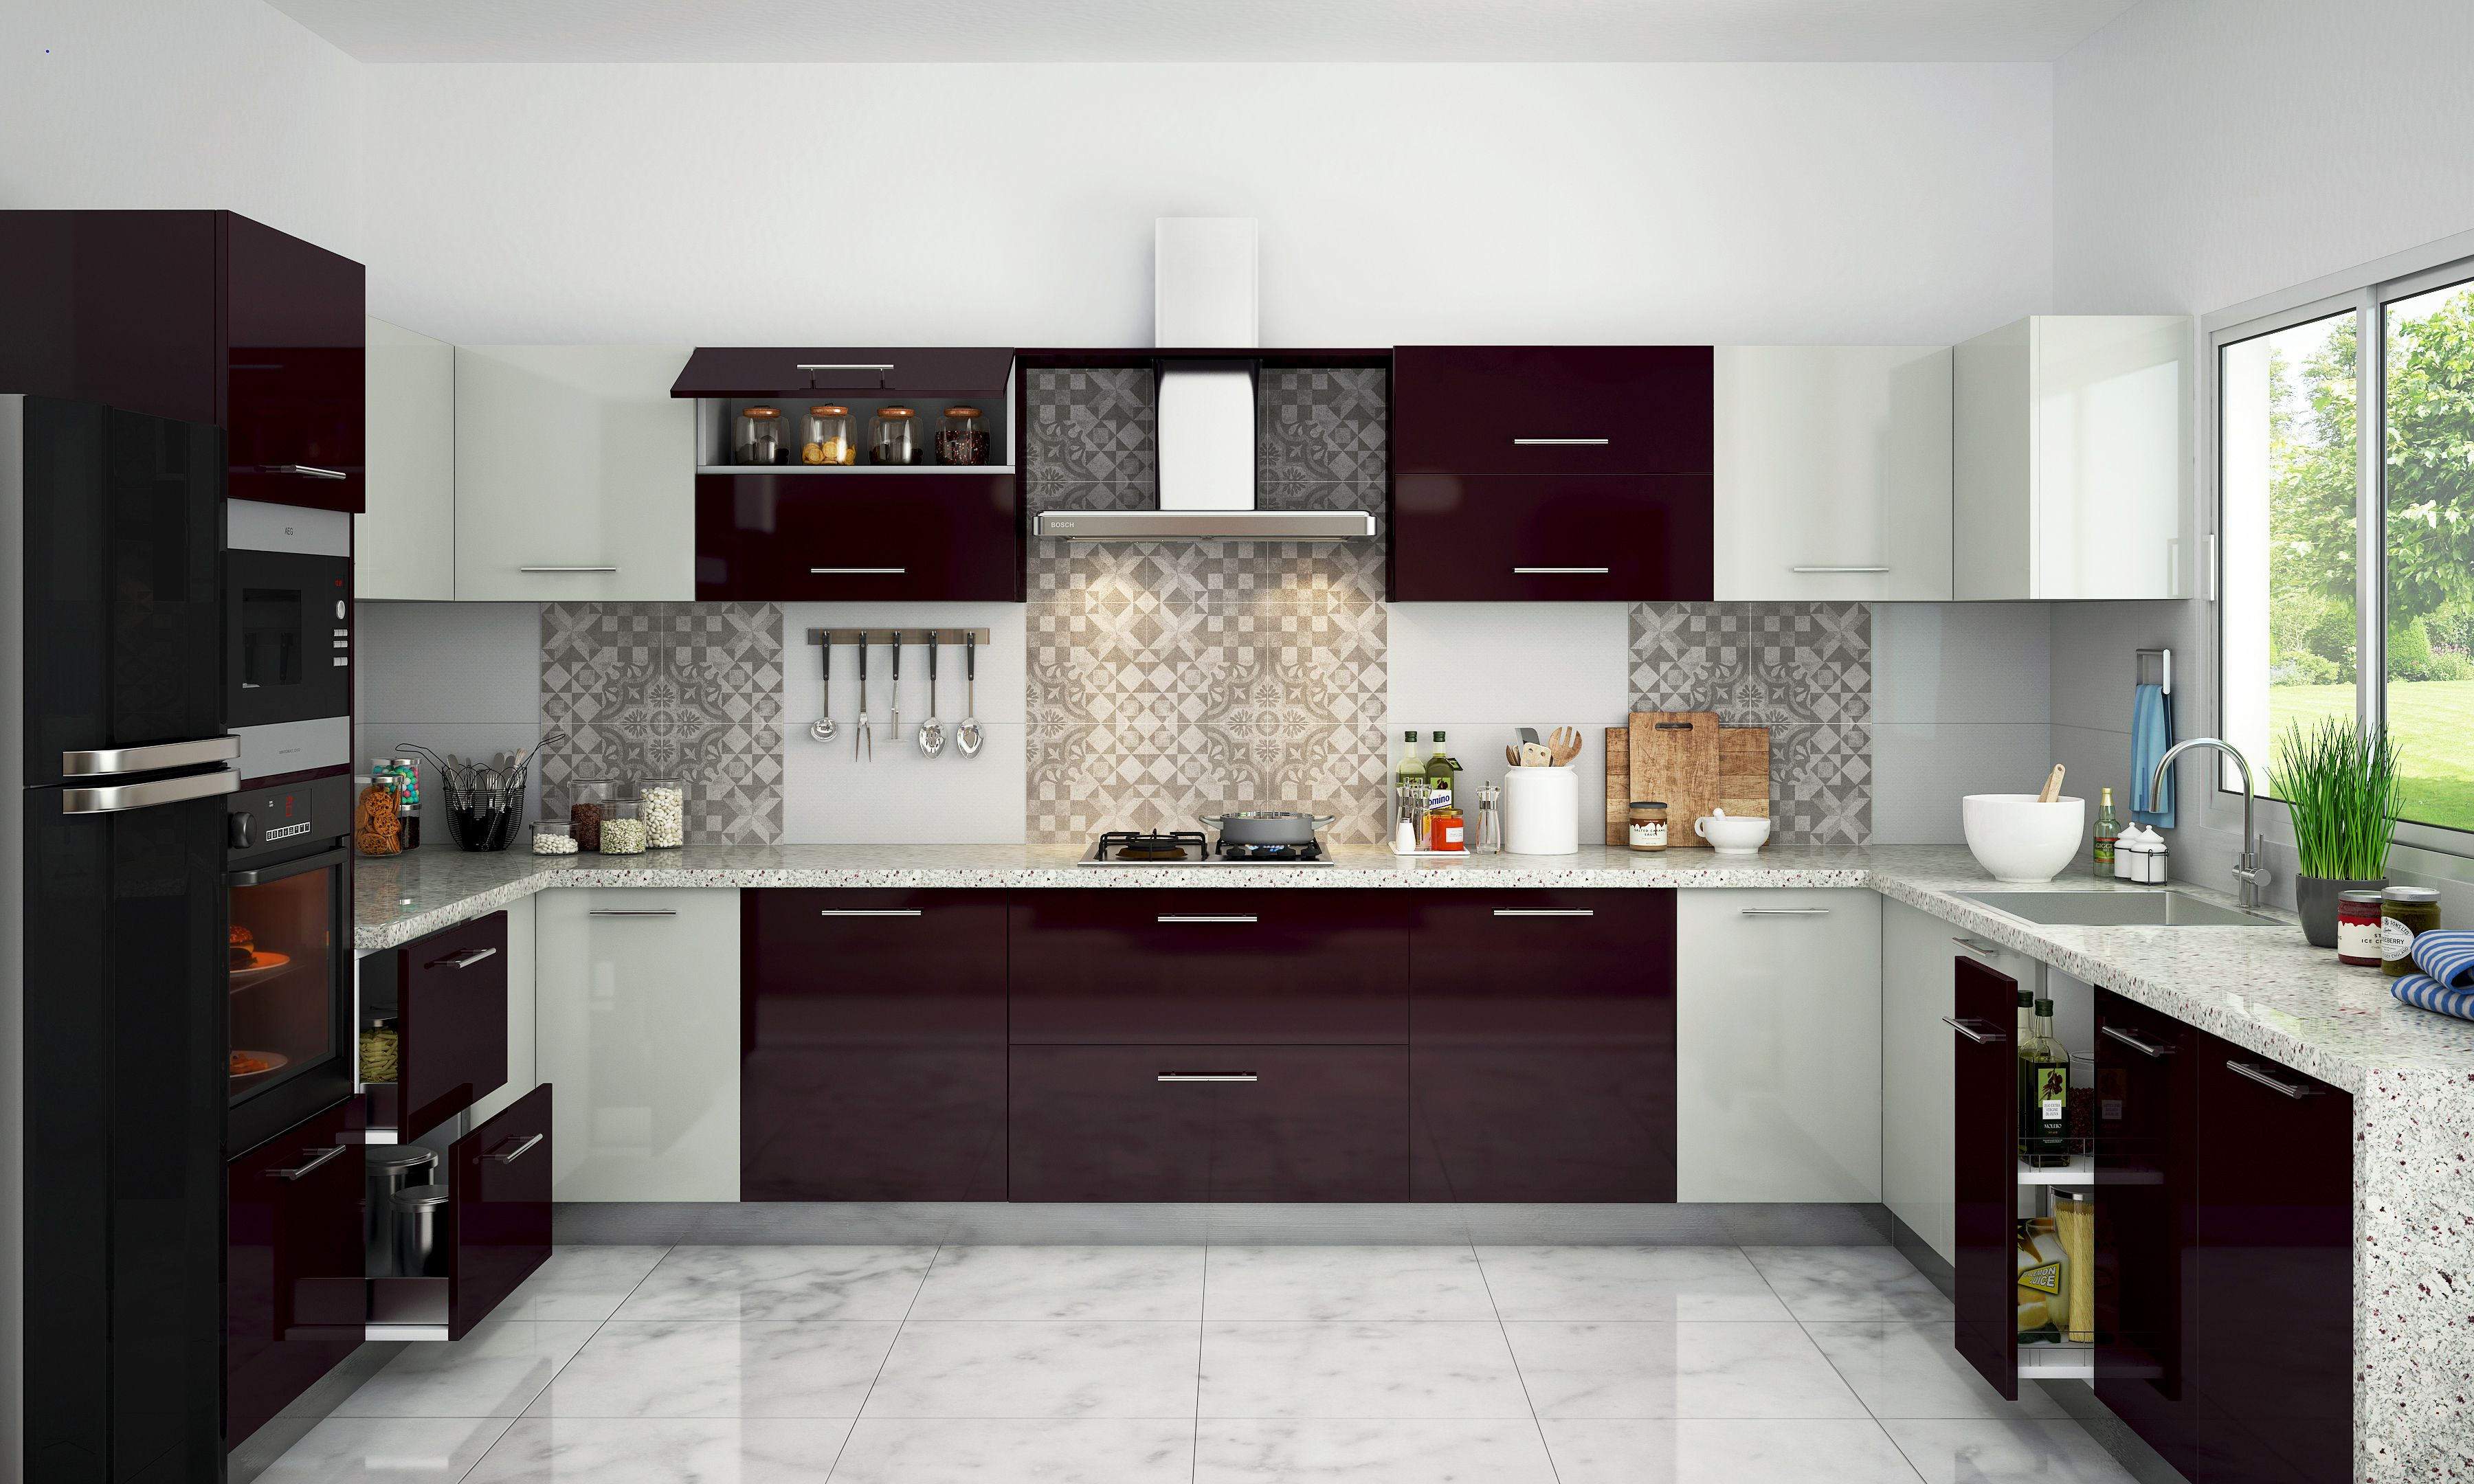 acrylic or laminate which is the better finish kitchen colour combination kitchen cabinets on kitchen cabinets color combination id=18705